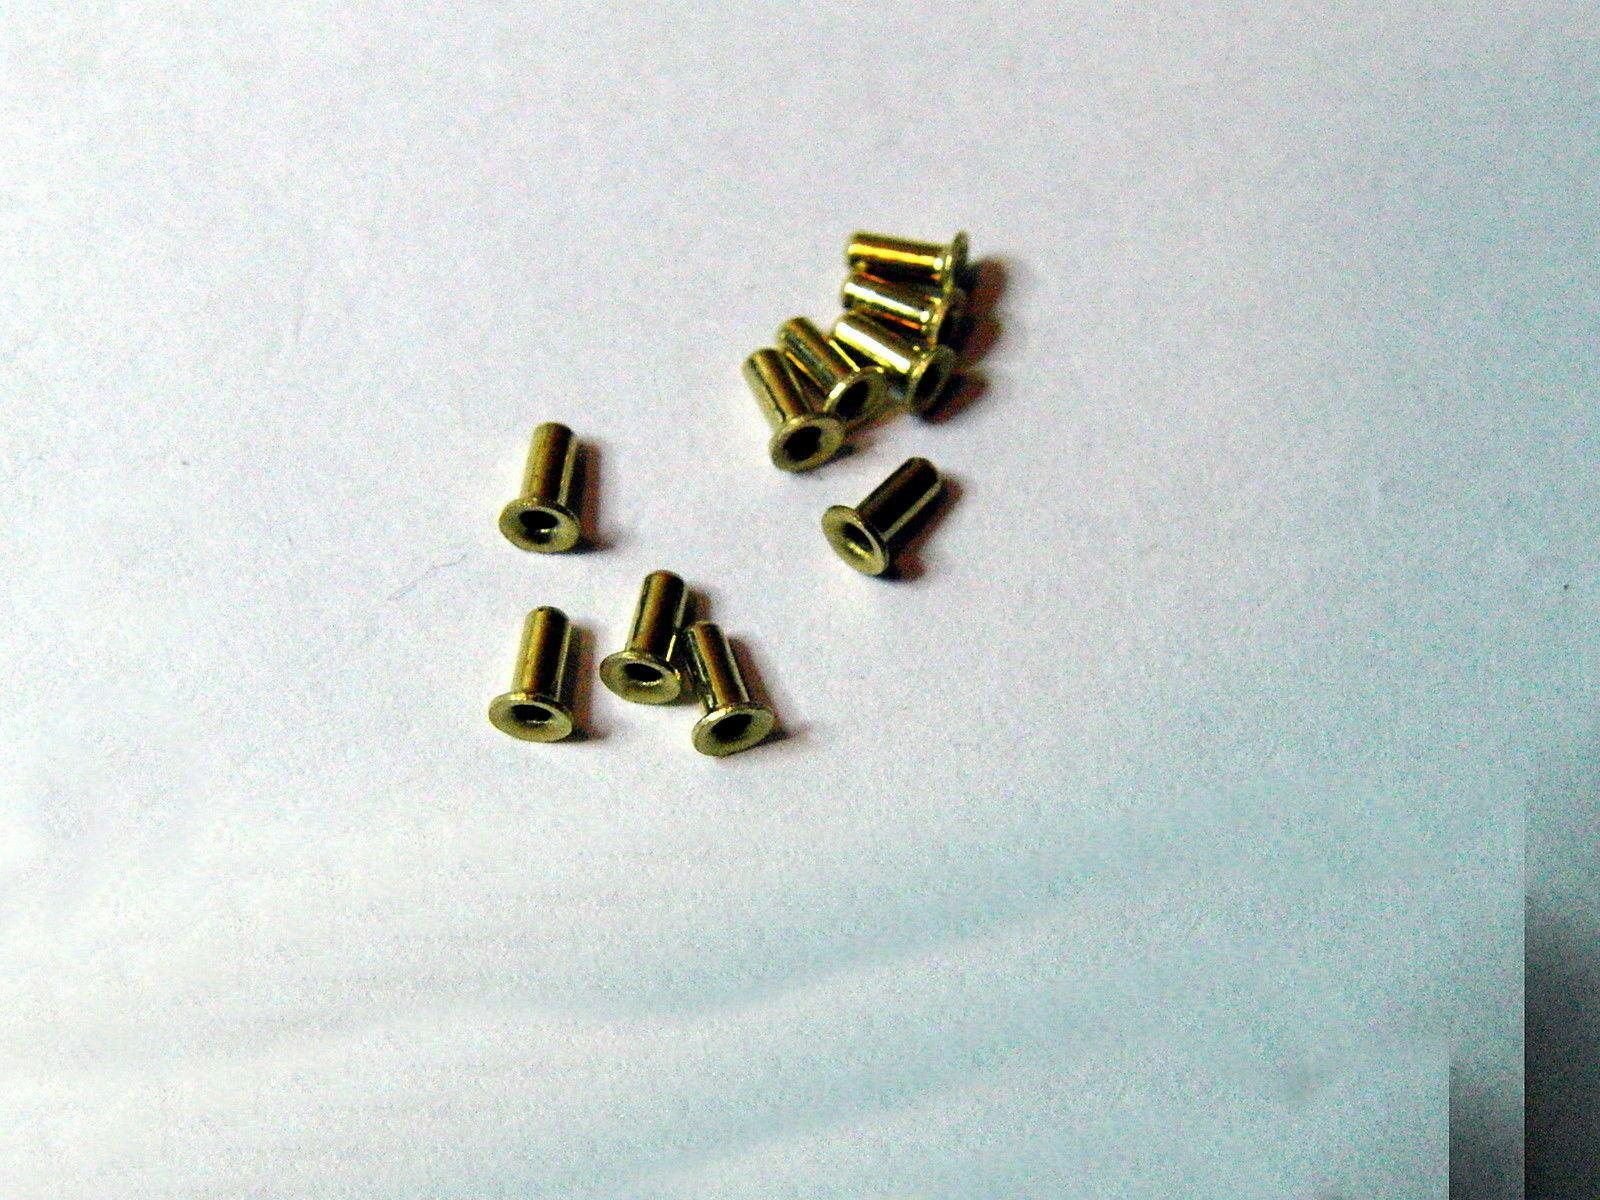 MS93 x10 # hornby triang spare parts eyelet rivet E7E